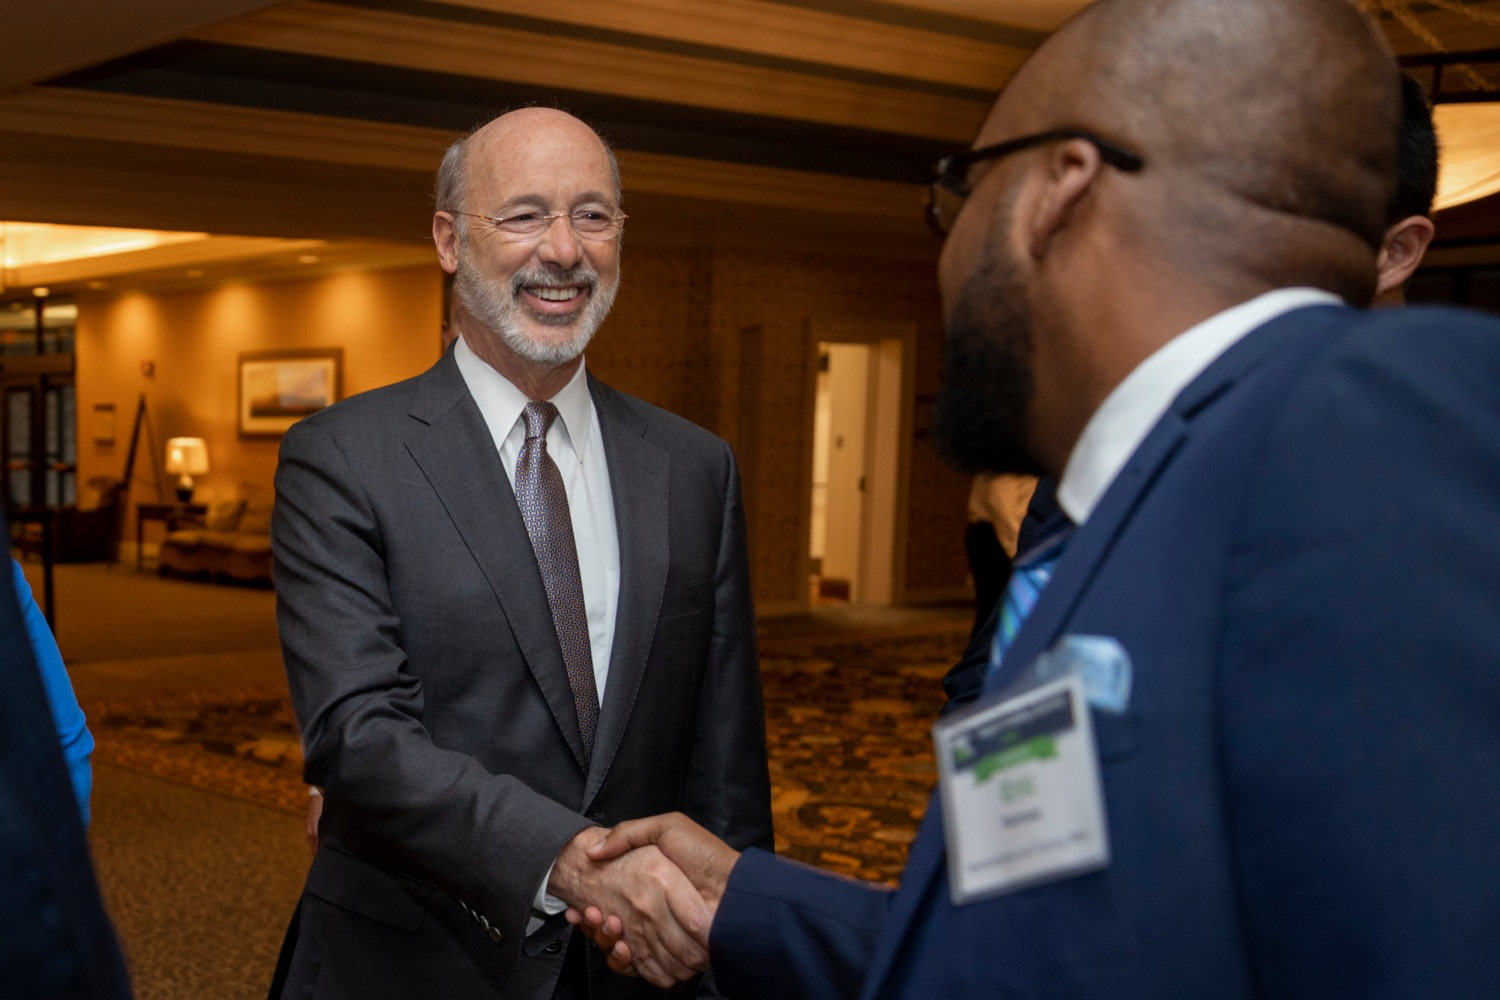 "<a href=""http://filesource.abacast.com/commonwealthofpa/photo/17520_LandI_Apprenticeships_NK_003.JPG"" target=""_blank"">⇣ Download Photo<br></a>Pennsylvania Governor Tom Wolf shakes hands with Eric Ramsay, director of Apprenticeship and Training Office, during the 2019 Pennsylvania Apprenticeship Summit at Hershey Lodge on Thursday, October 31, 2019."